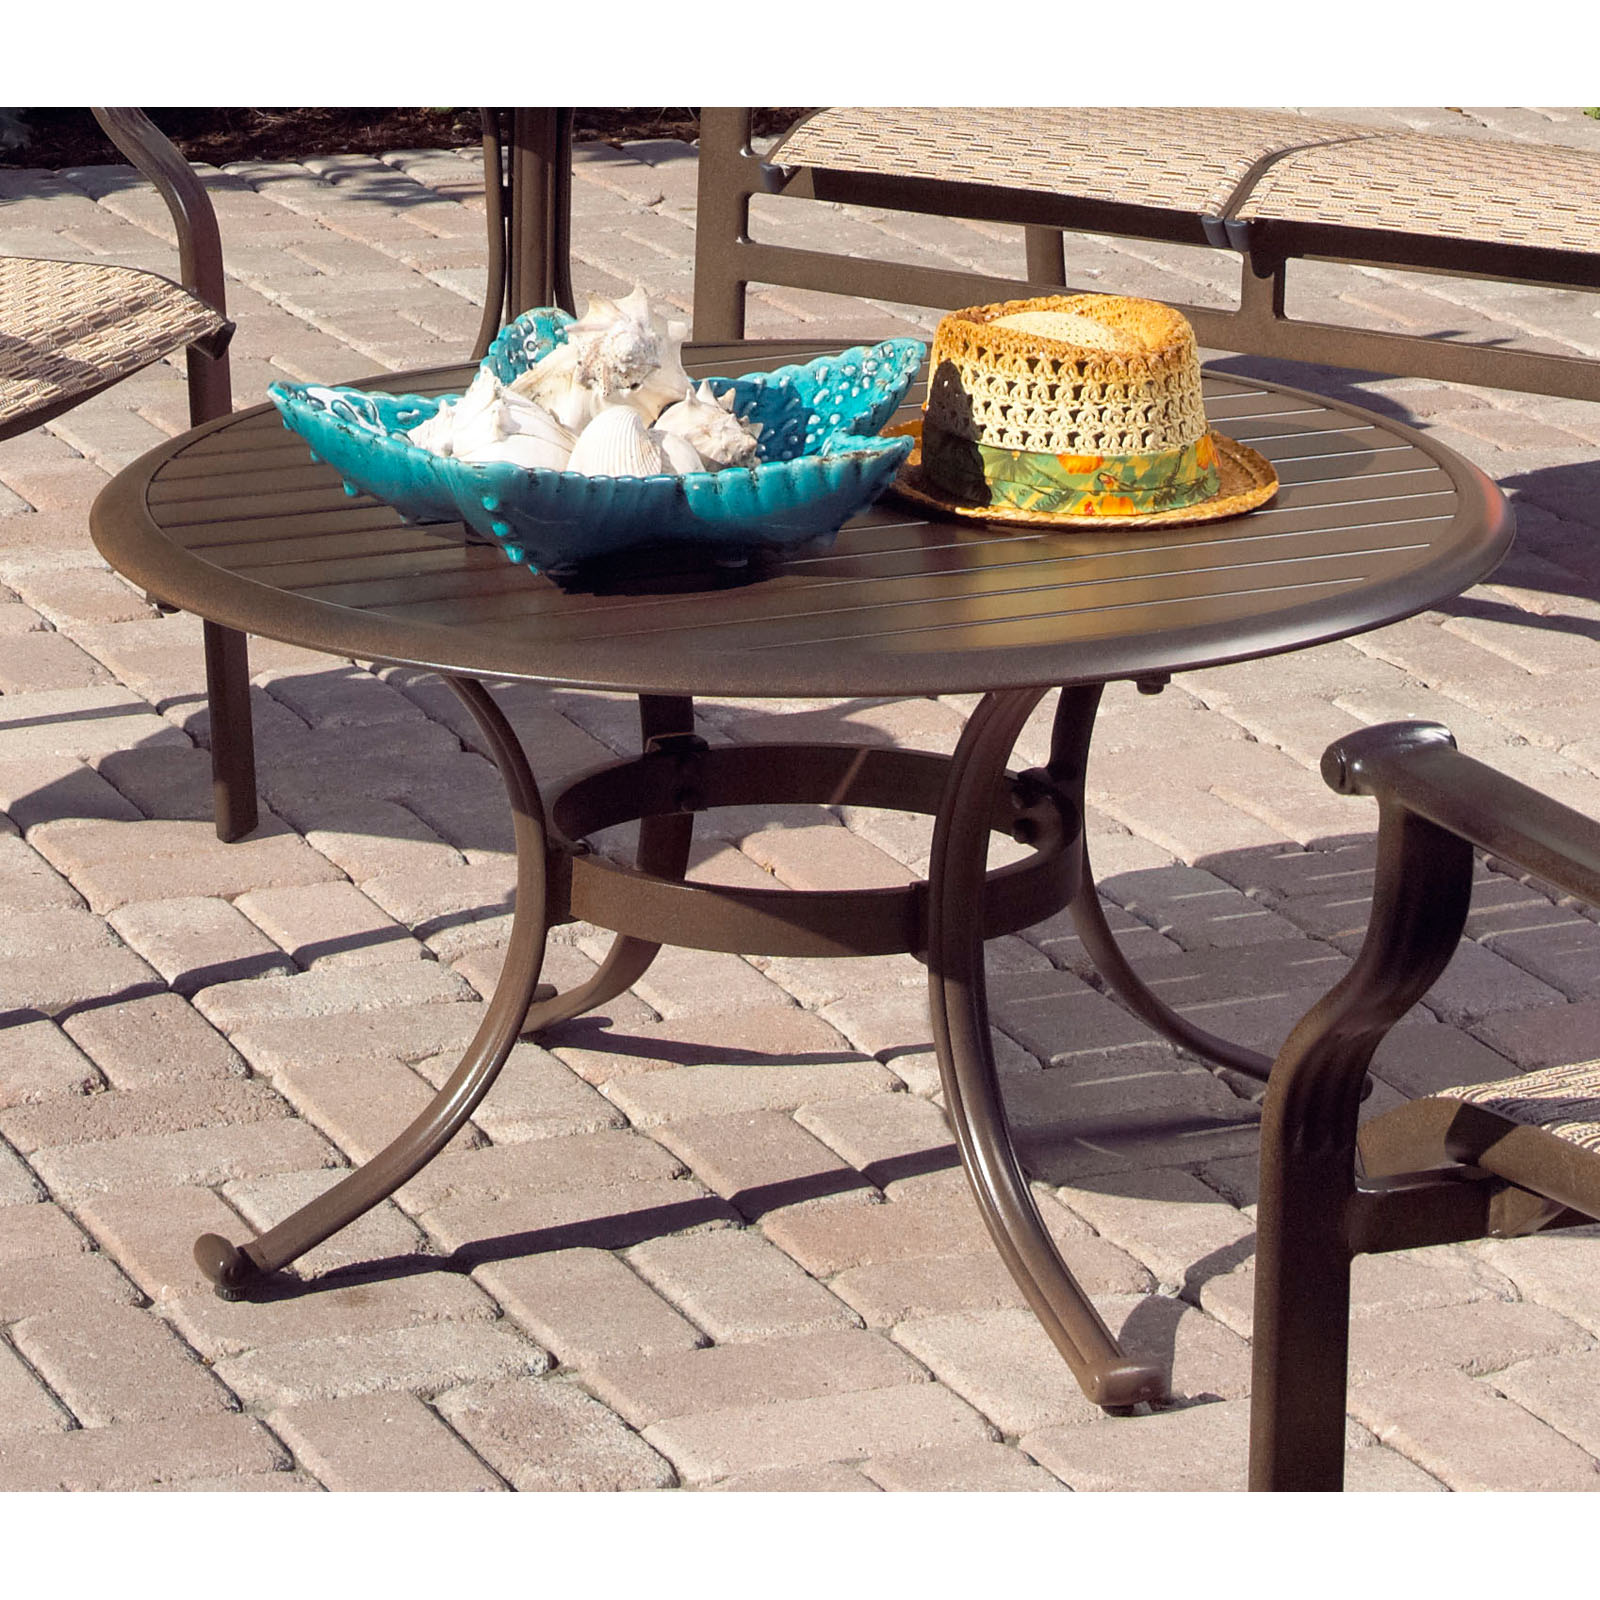 Aluminum Patio Coffee Table: Panama Jack Island Breeze Patio Coffee Table With Slatted